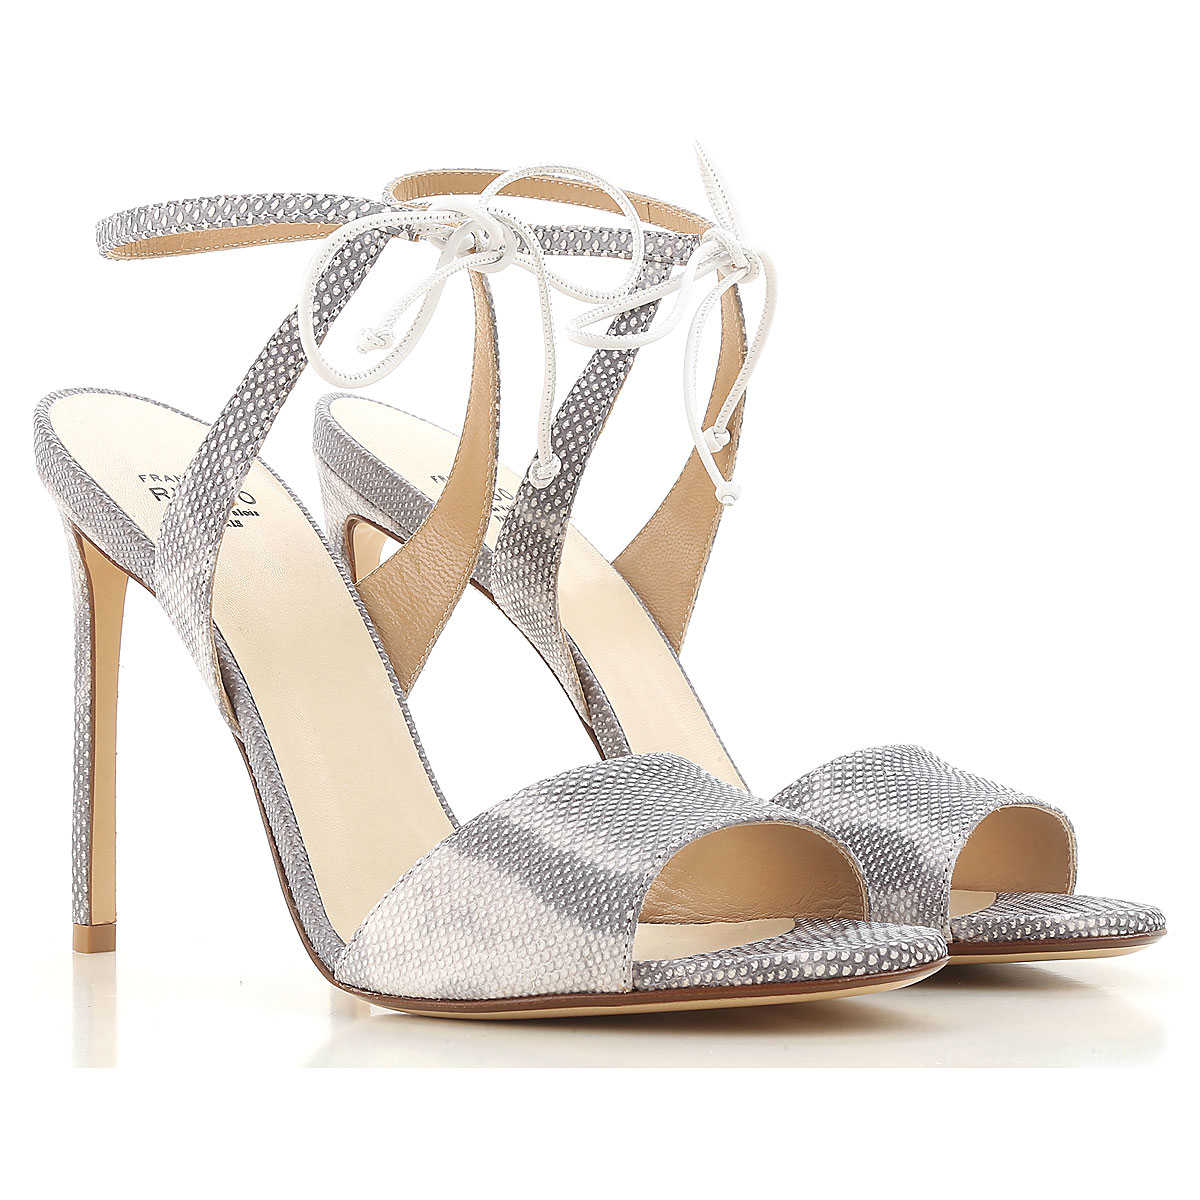 Francesco Russo Sandals for Women On Sale in Outlet White SE - GOOFASH